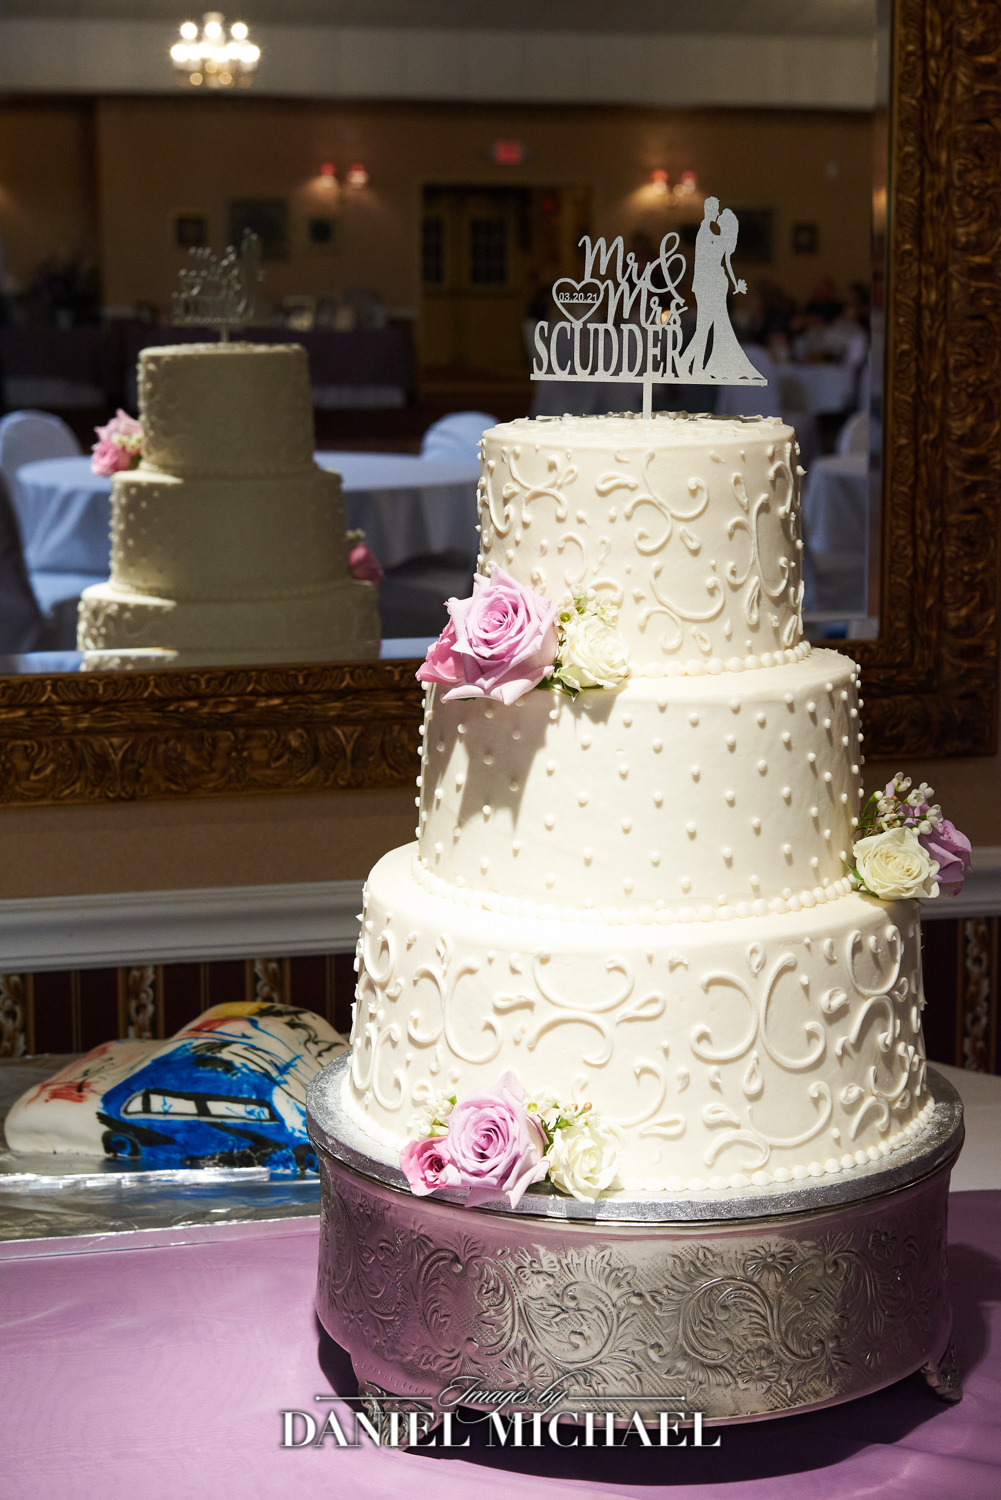 Wedding Cake with Mirror Reflection